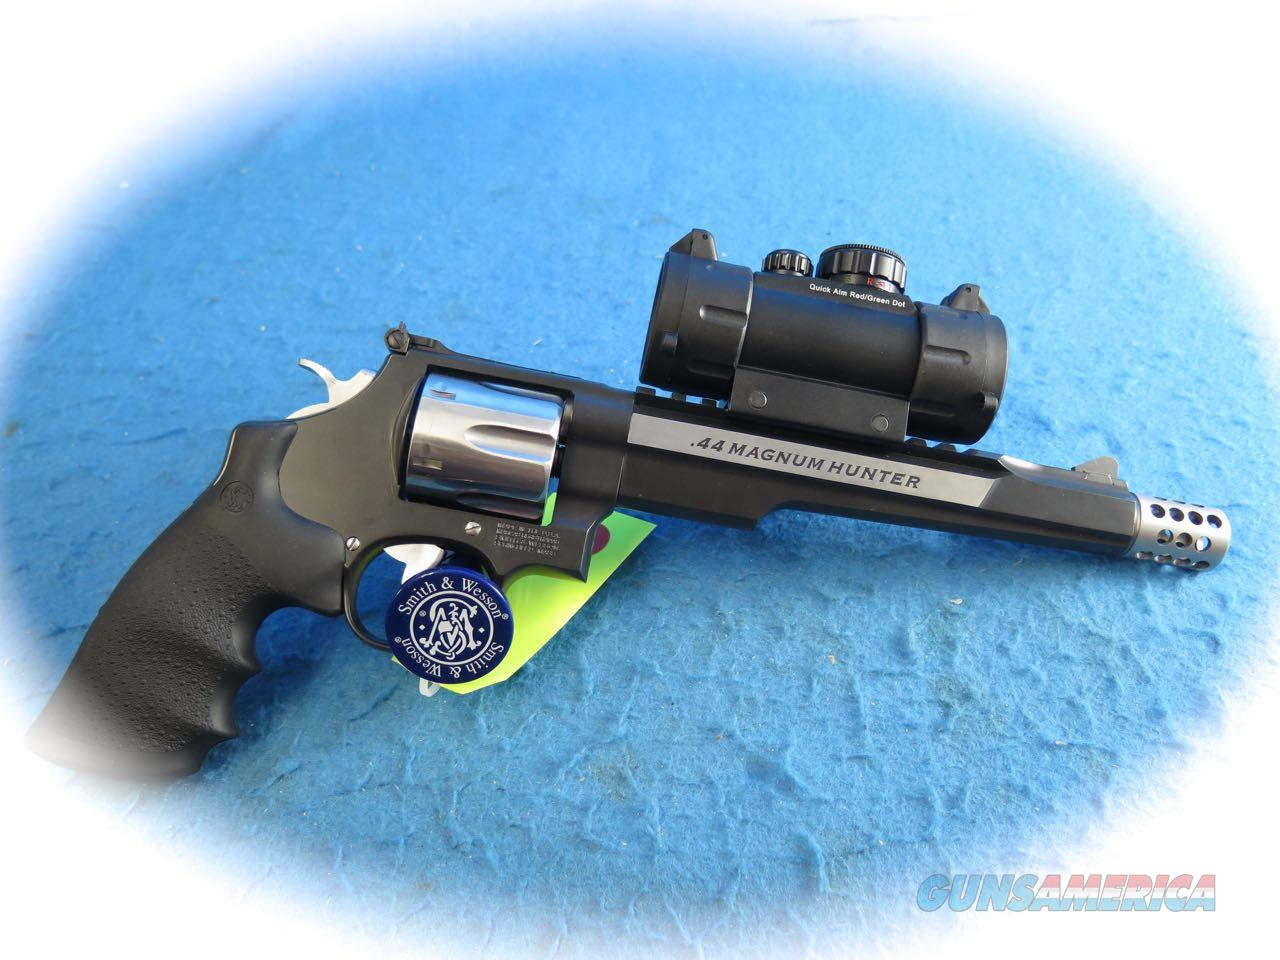 Smith & Wesson Model 629 Performance Center .44 Magnum Hunter **New**  Guns > Pistols > Smith & Wesson Revolvers > Performance Center